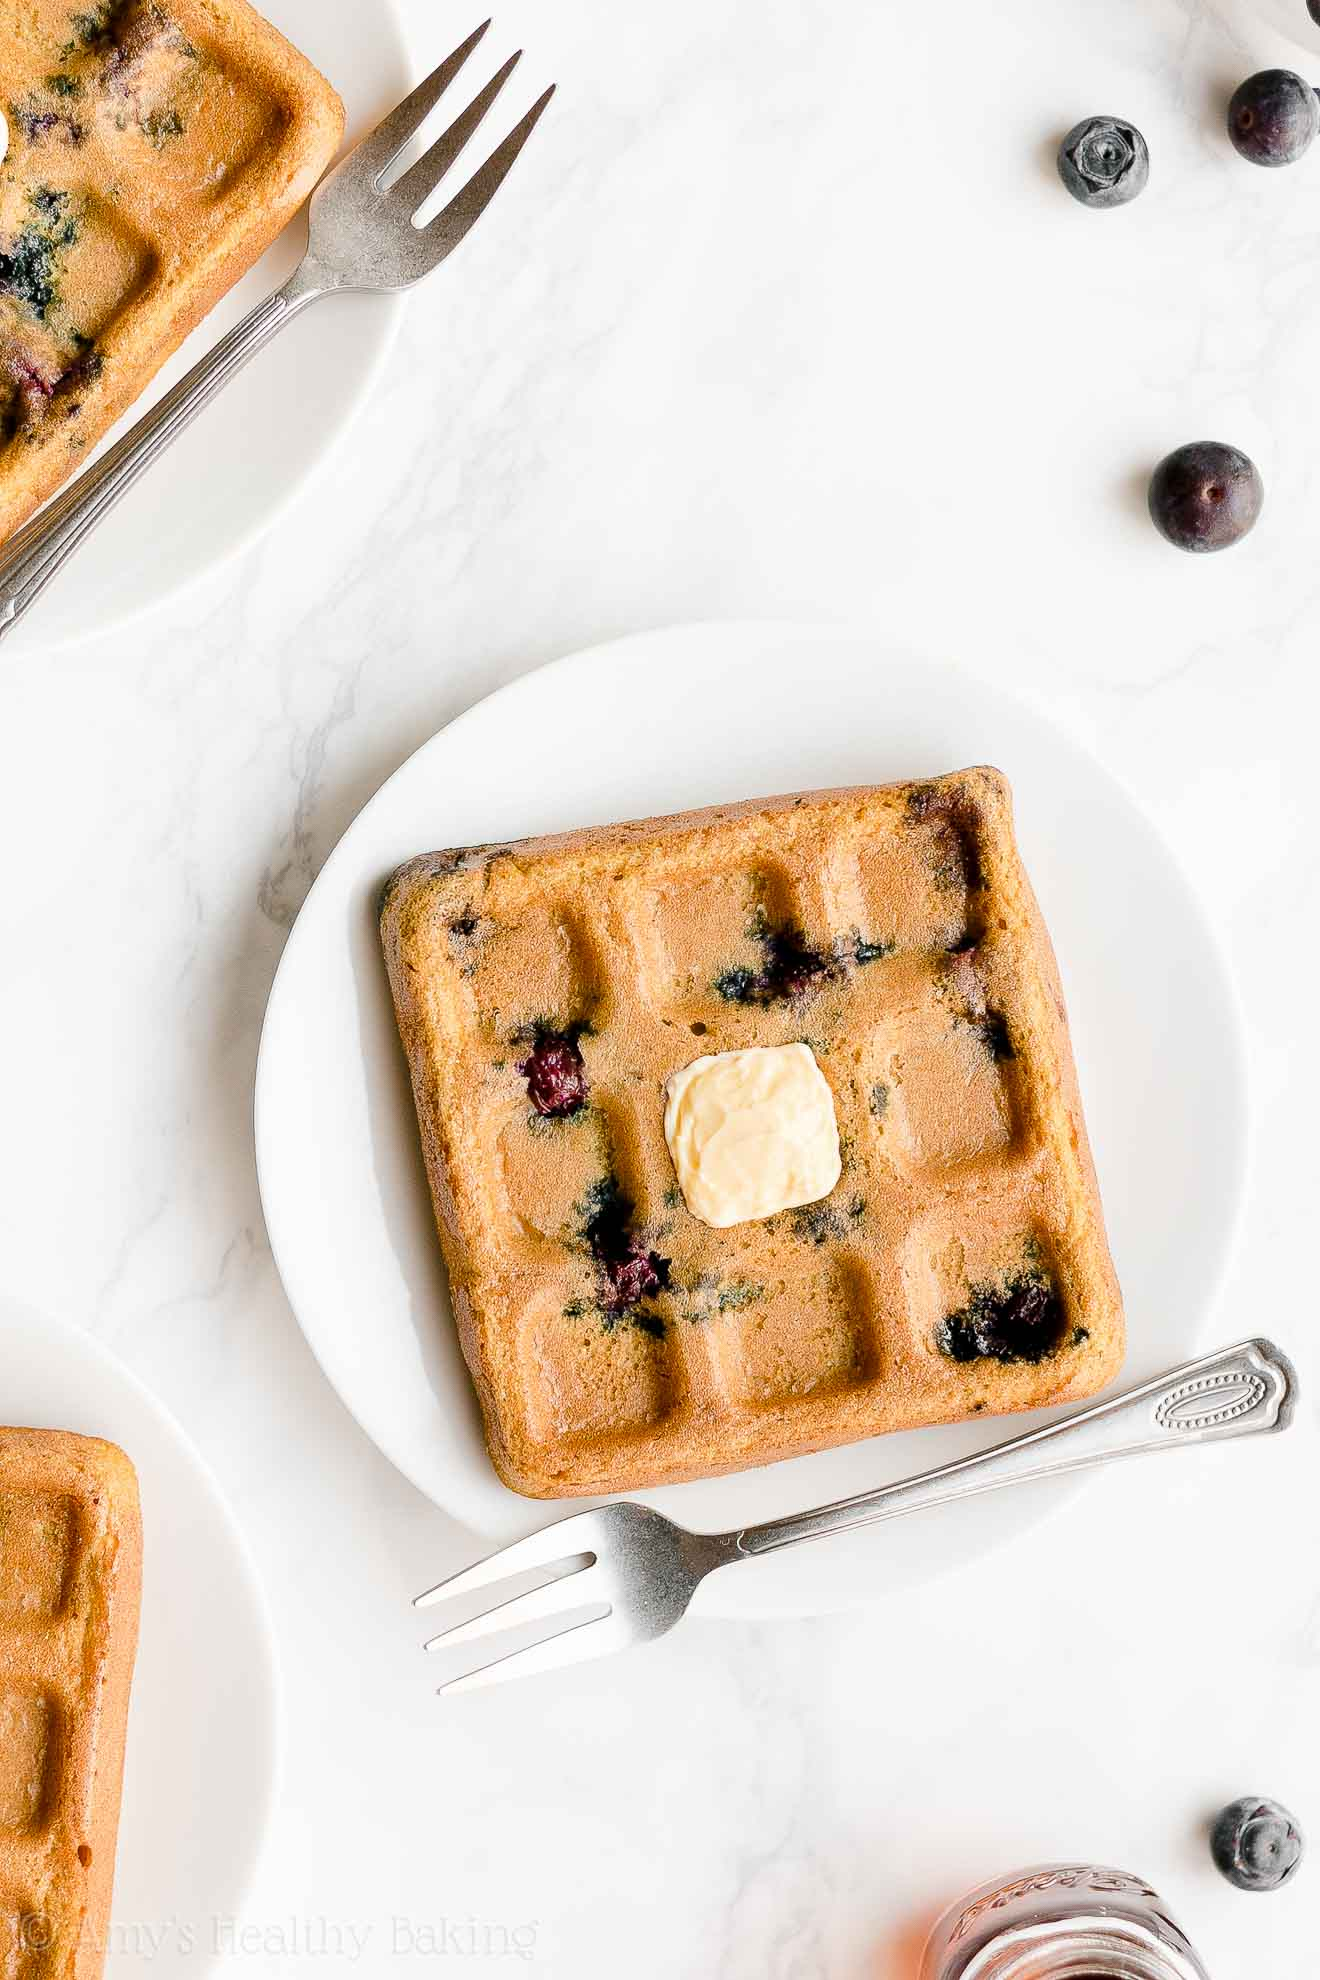 Easy Healthy Gluten Free Low Calorie Fluffy Crispy Blueberry Waffles